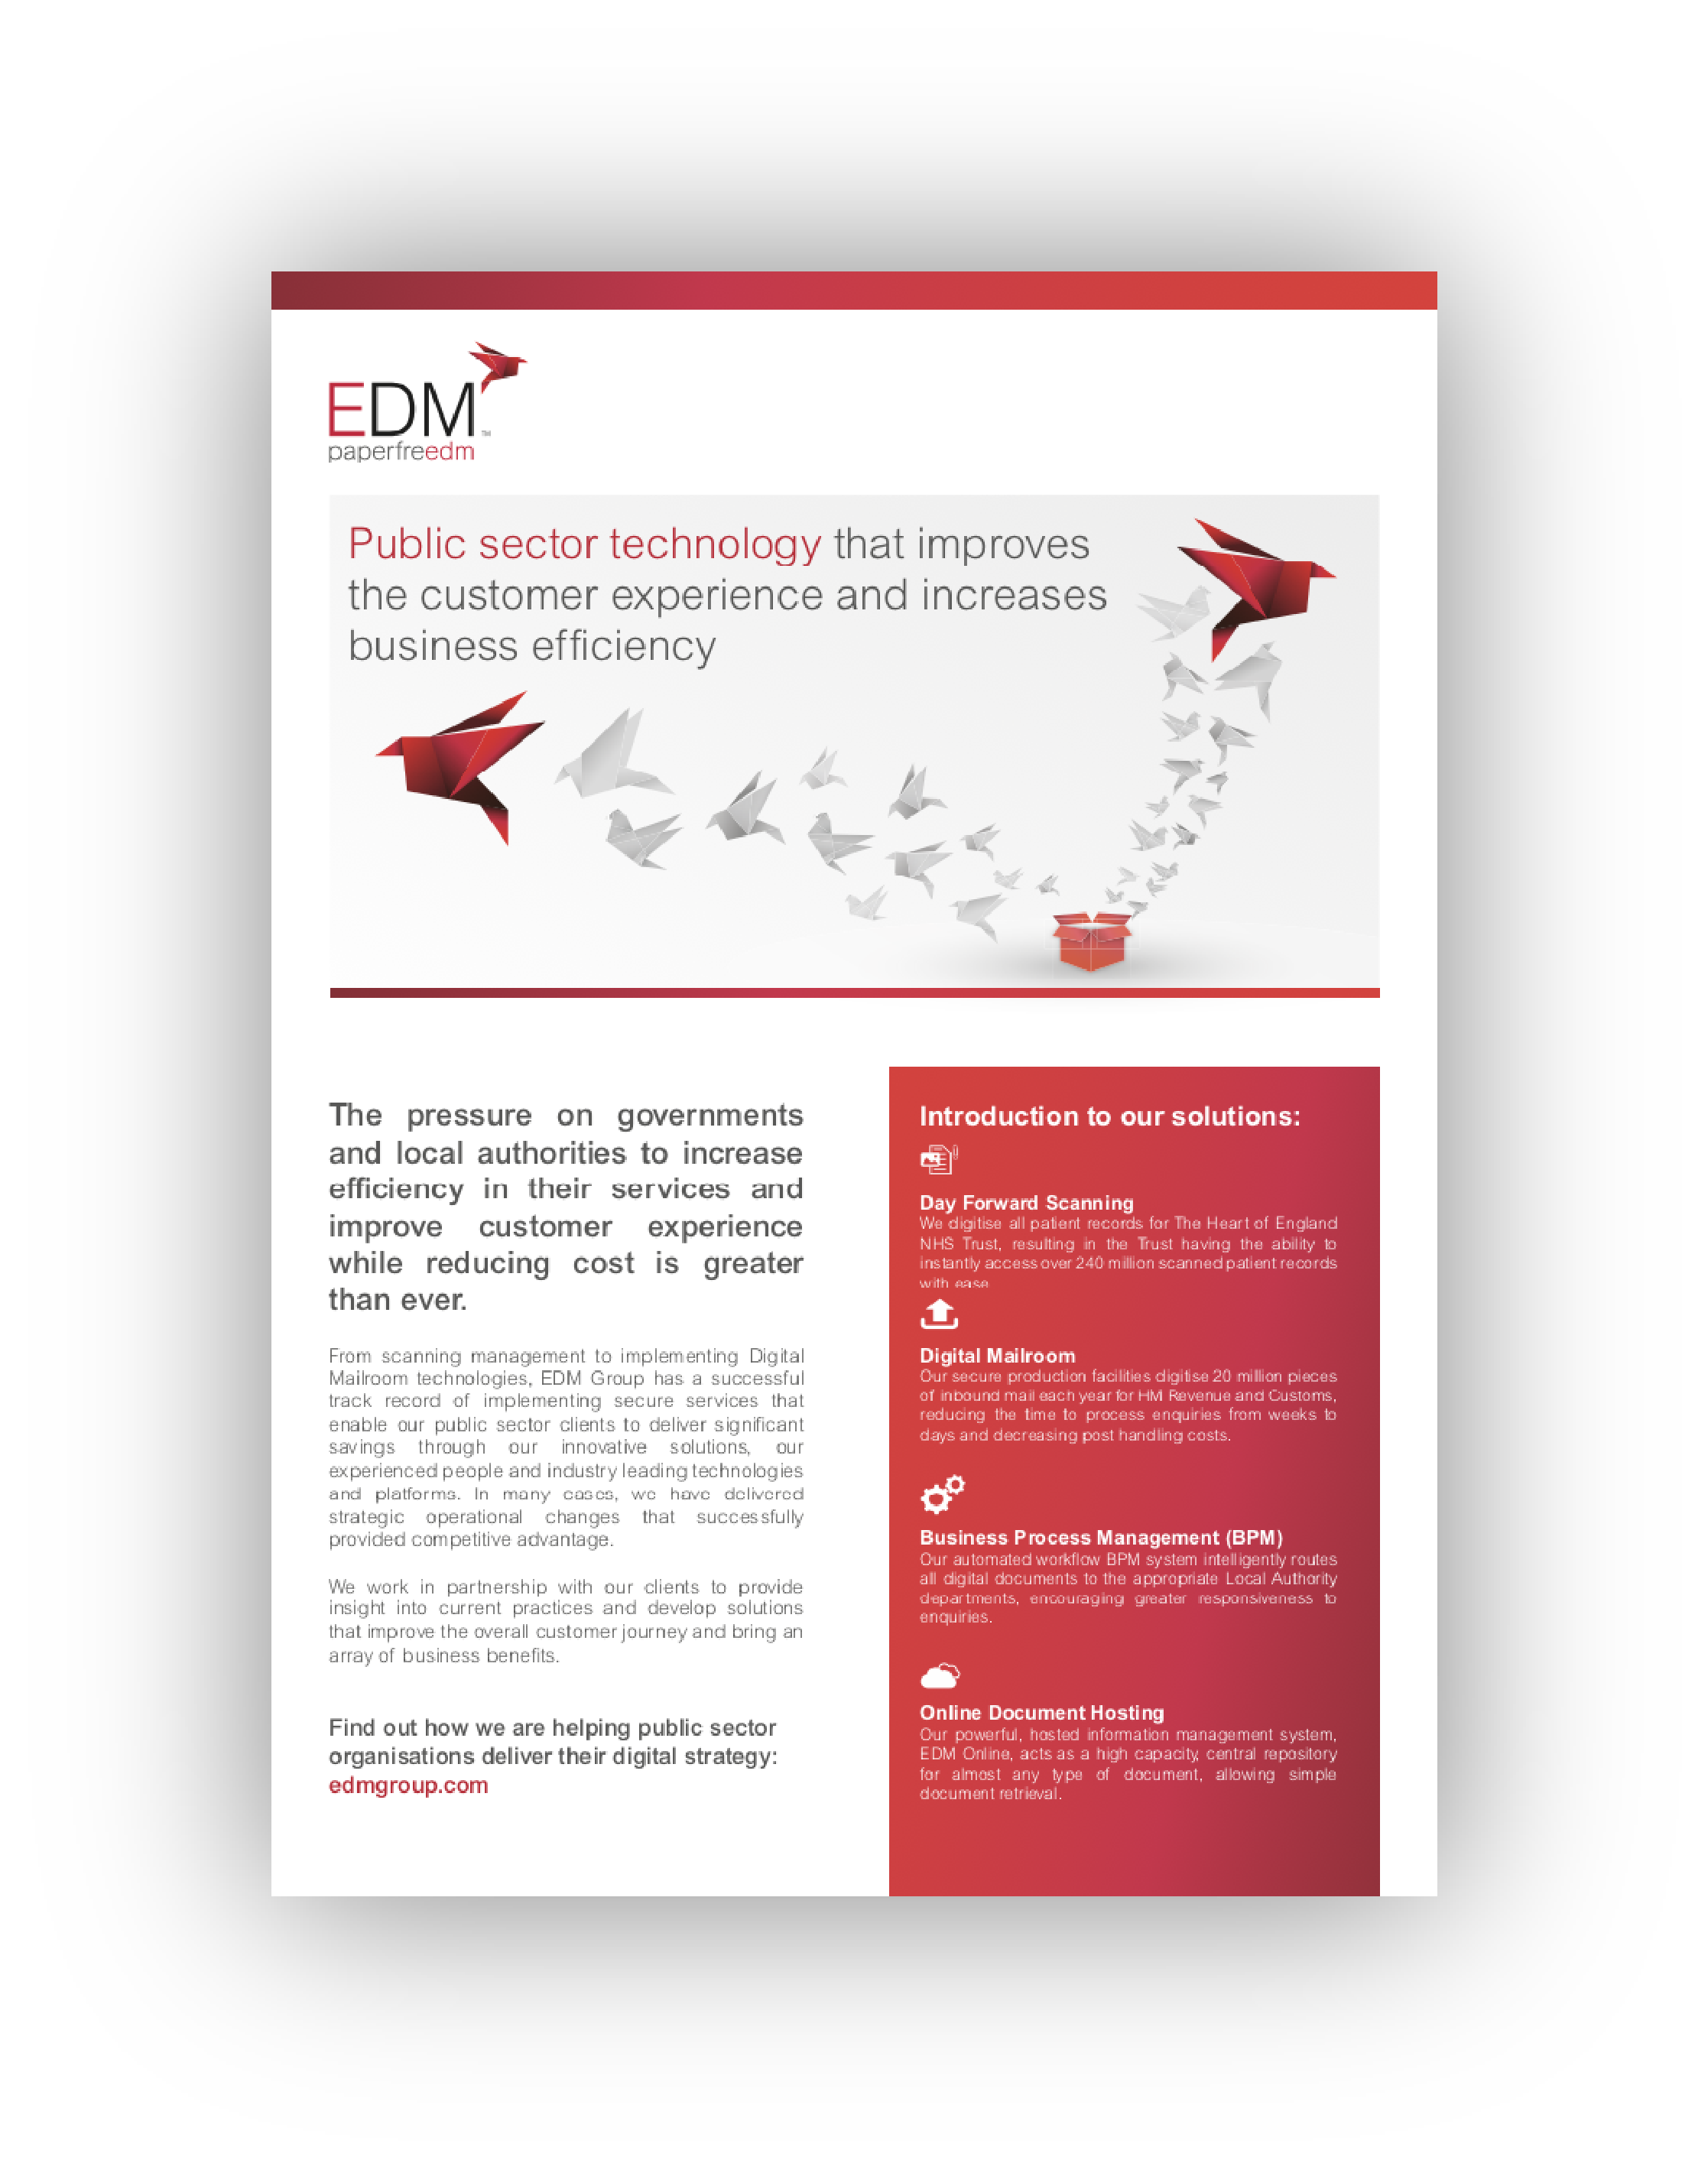 EDM Group have extensive experience in helping some of the largest public sector companies achieve their digitisation strategies.